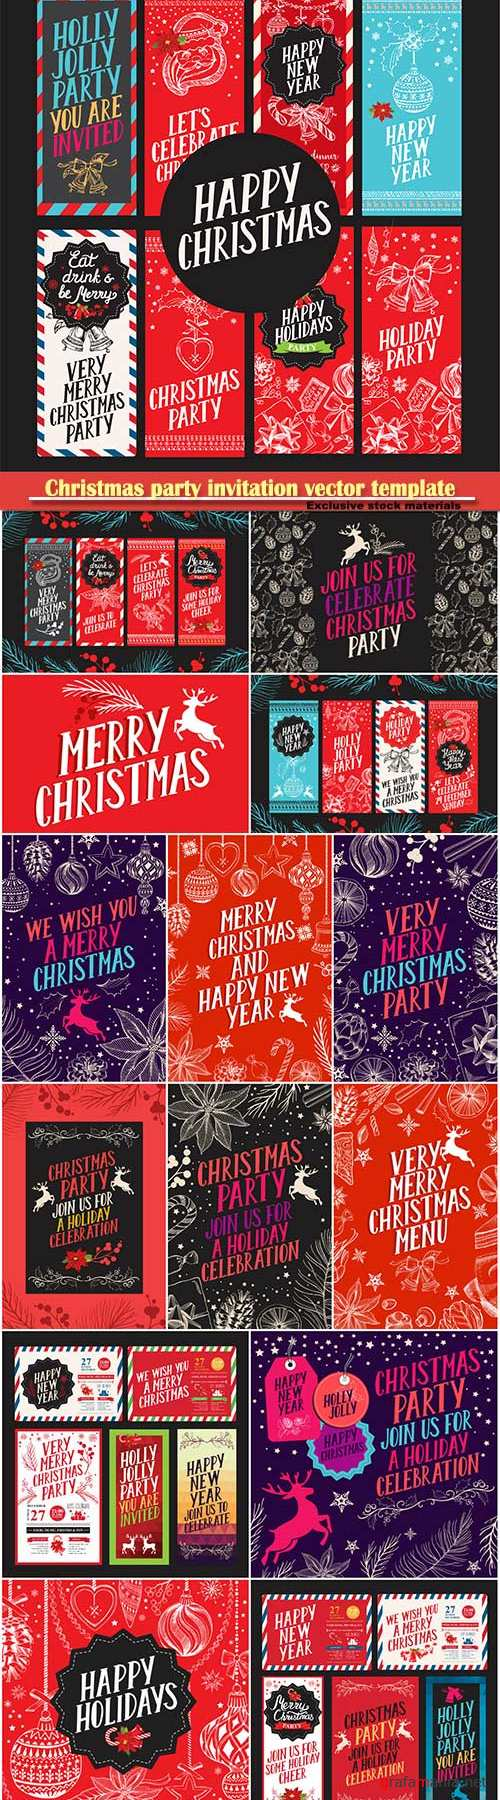 Christmas party invitation vector template